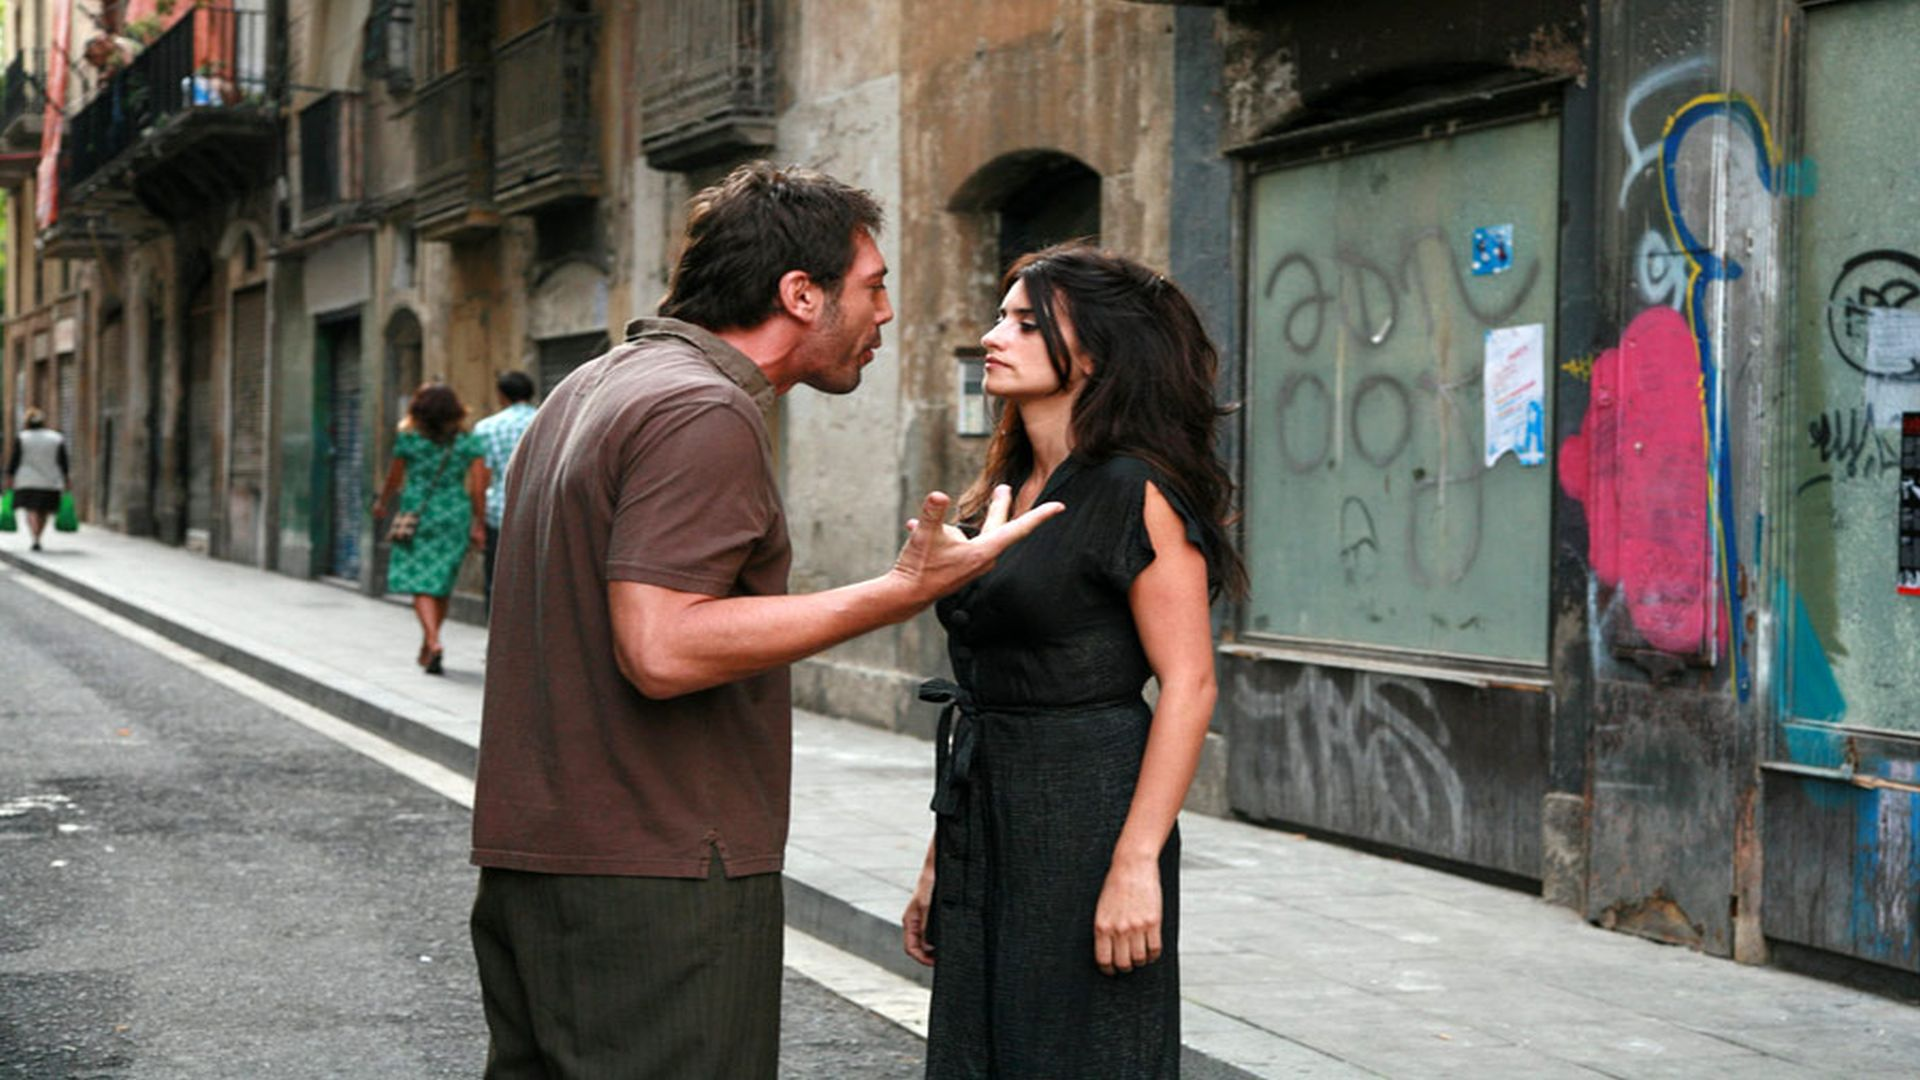 Vicky Cristina Barcelona Full HD Wallpaper And Background